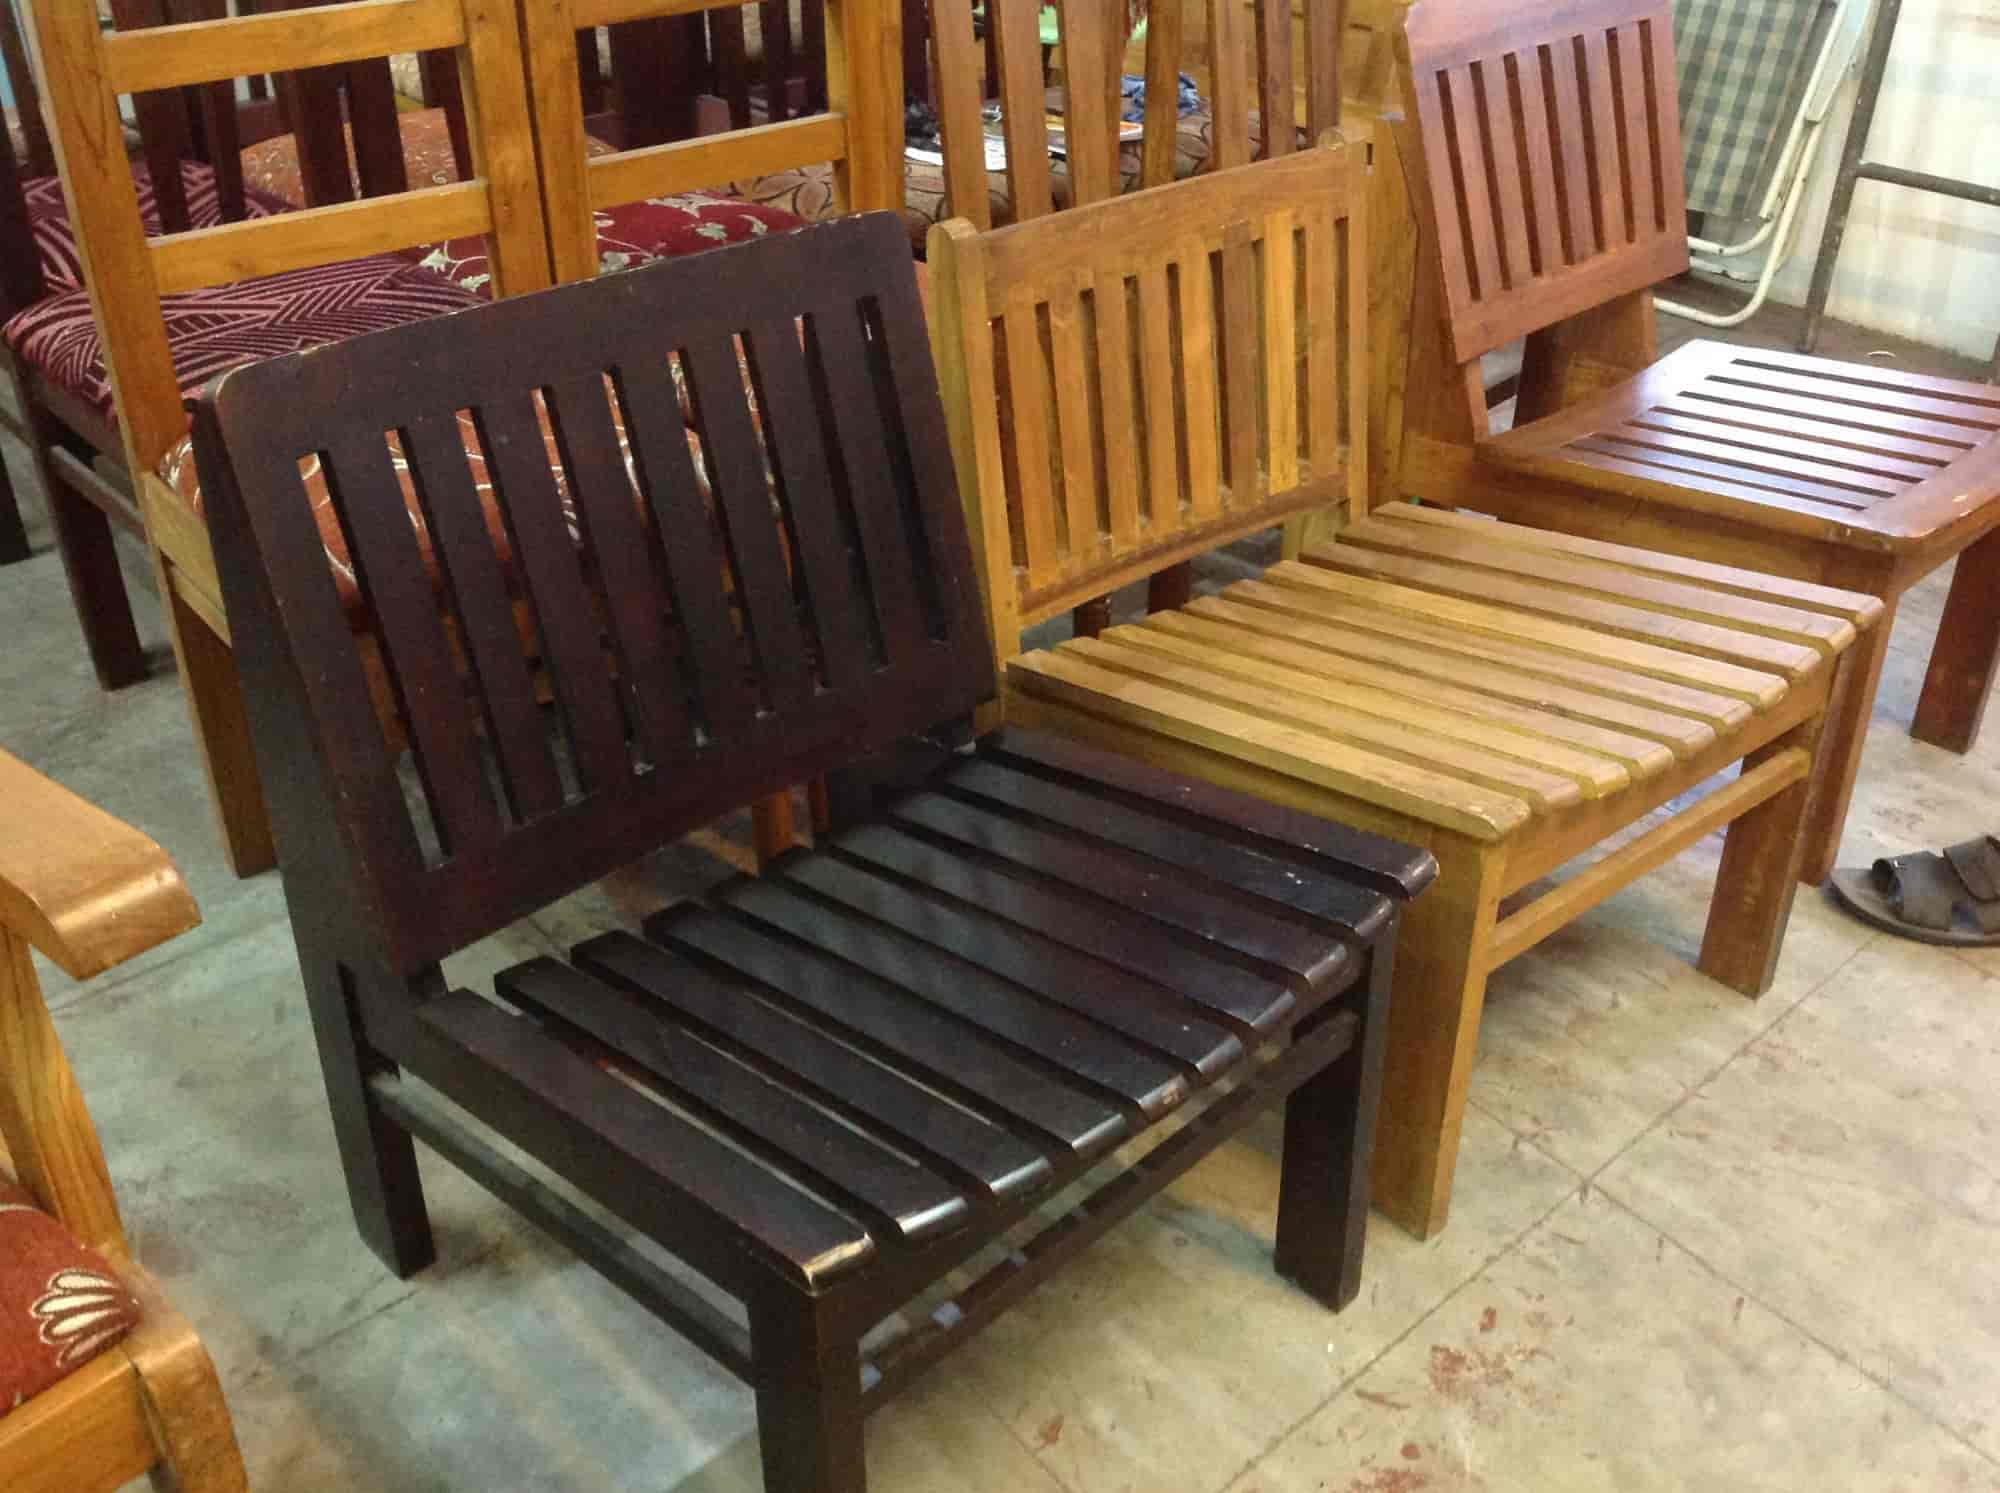 Superb Rich Wood Furniture, Kunnathurmedu   Furniture Dealers In Palakkad    Justdial